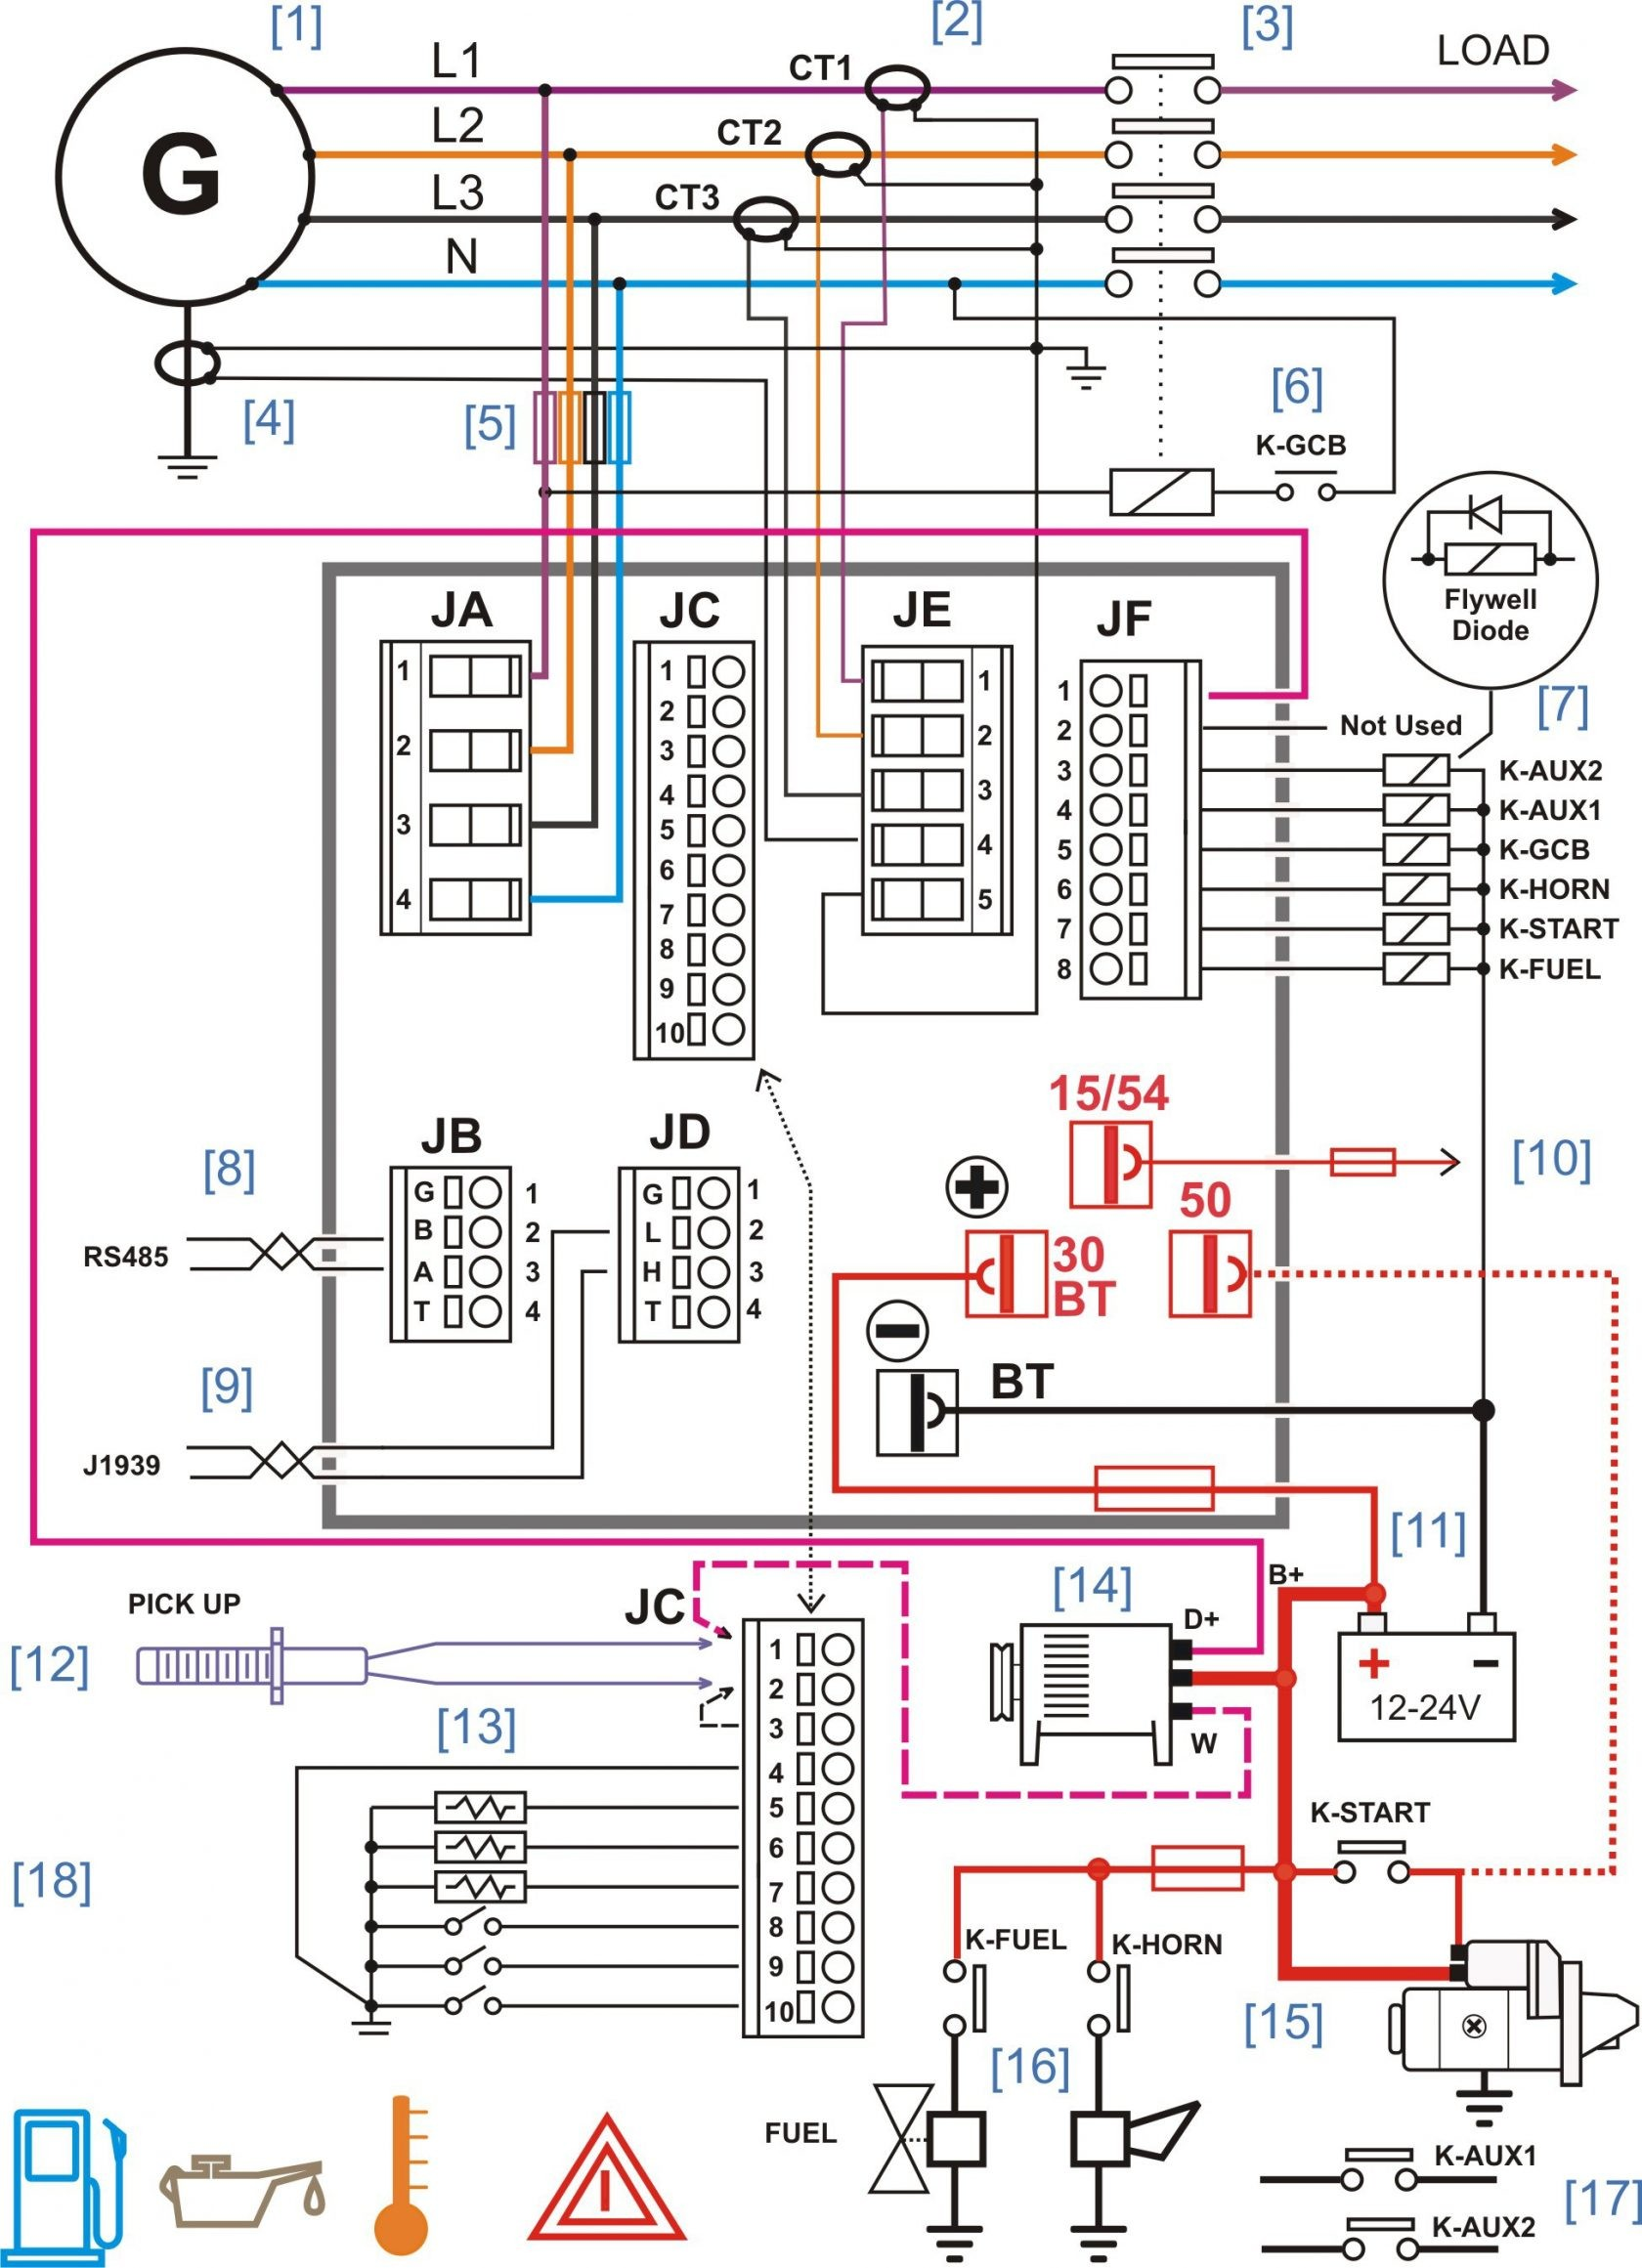 Peterbilt Air Brake System Diagram Latest Delphi Concert Class Radio Wiring Diagram Concert Class Of Peterbilt Air Brake System Diagram